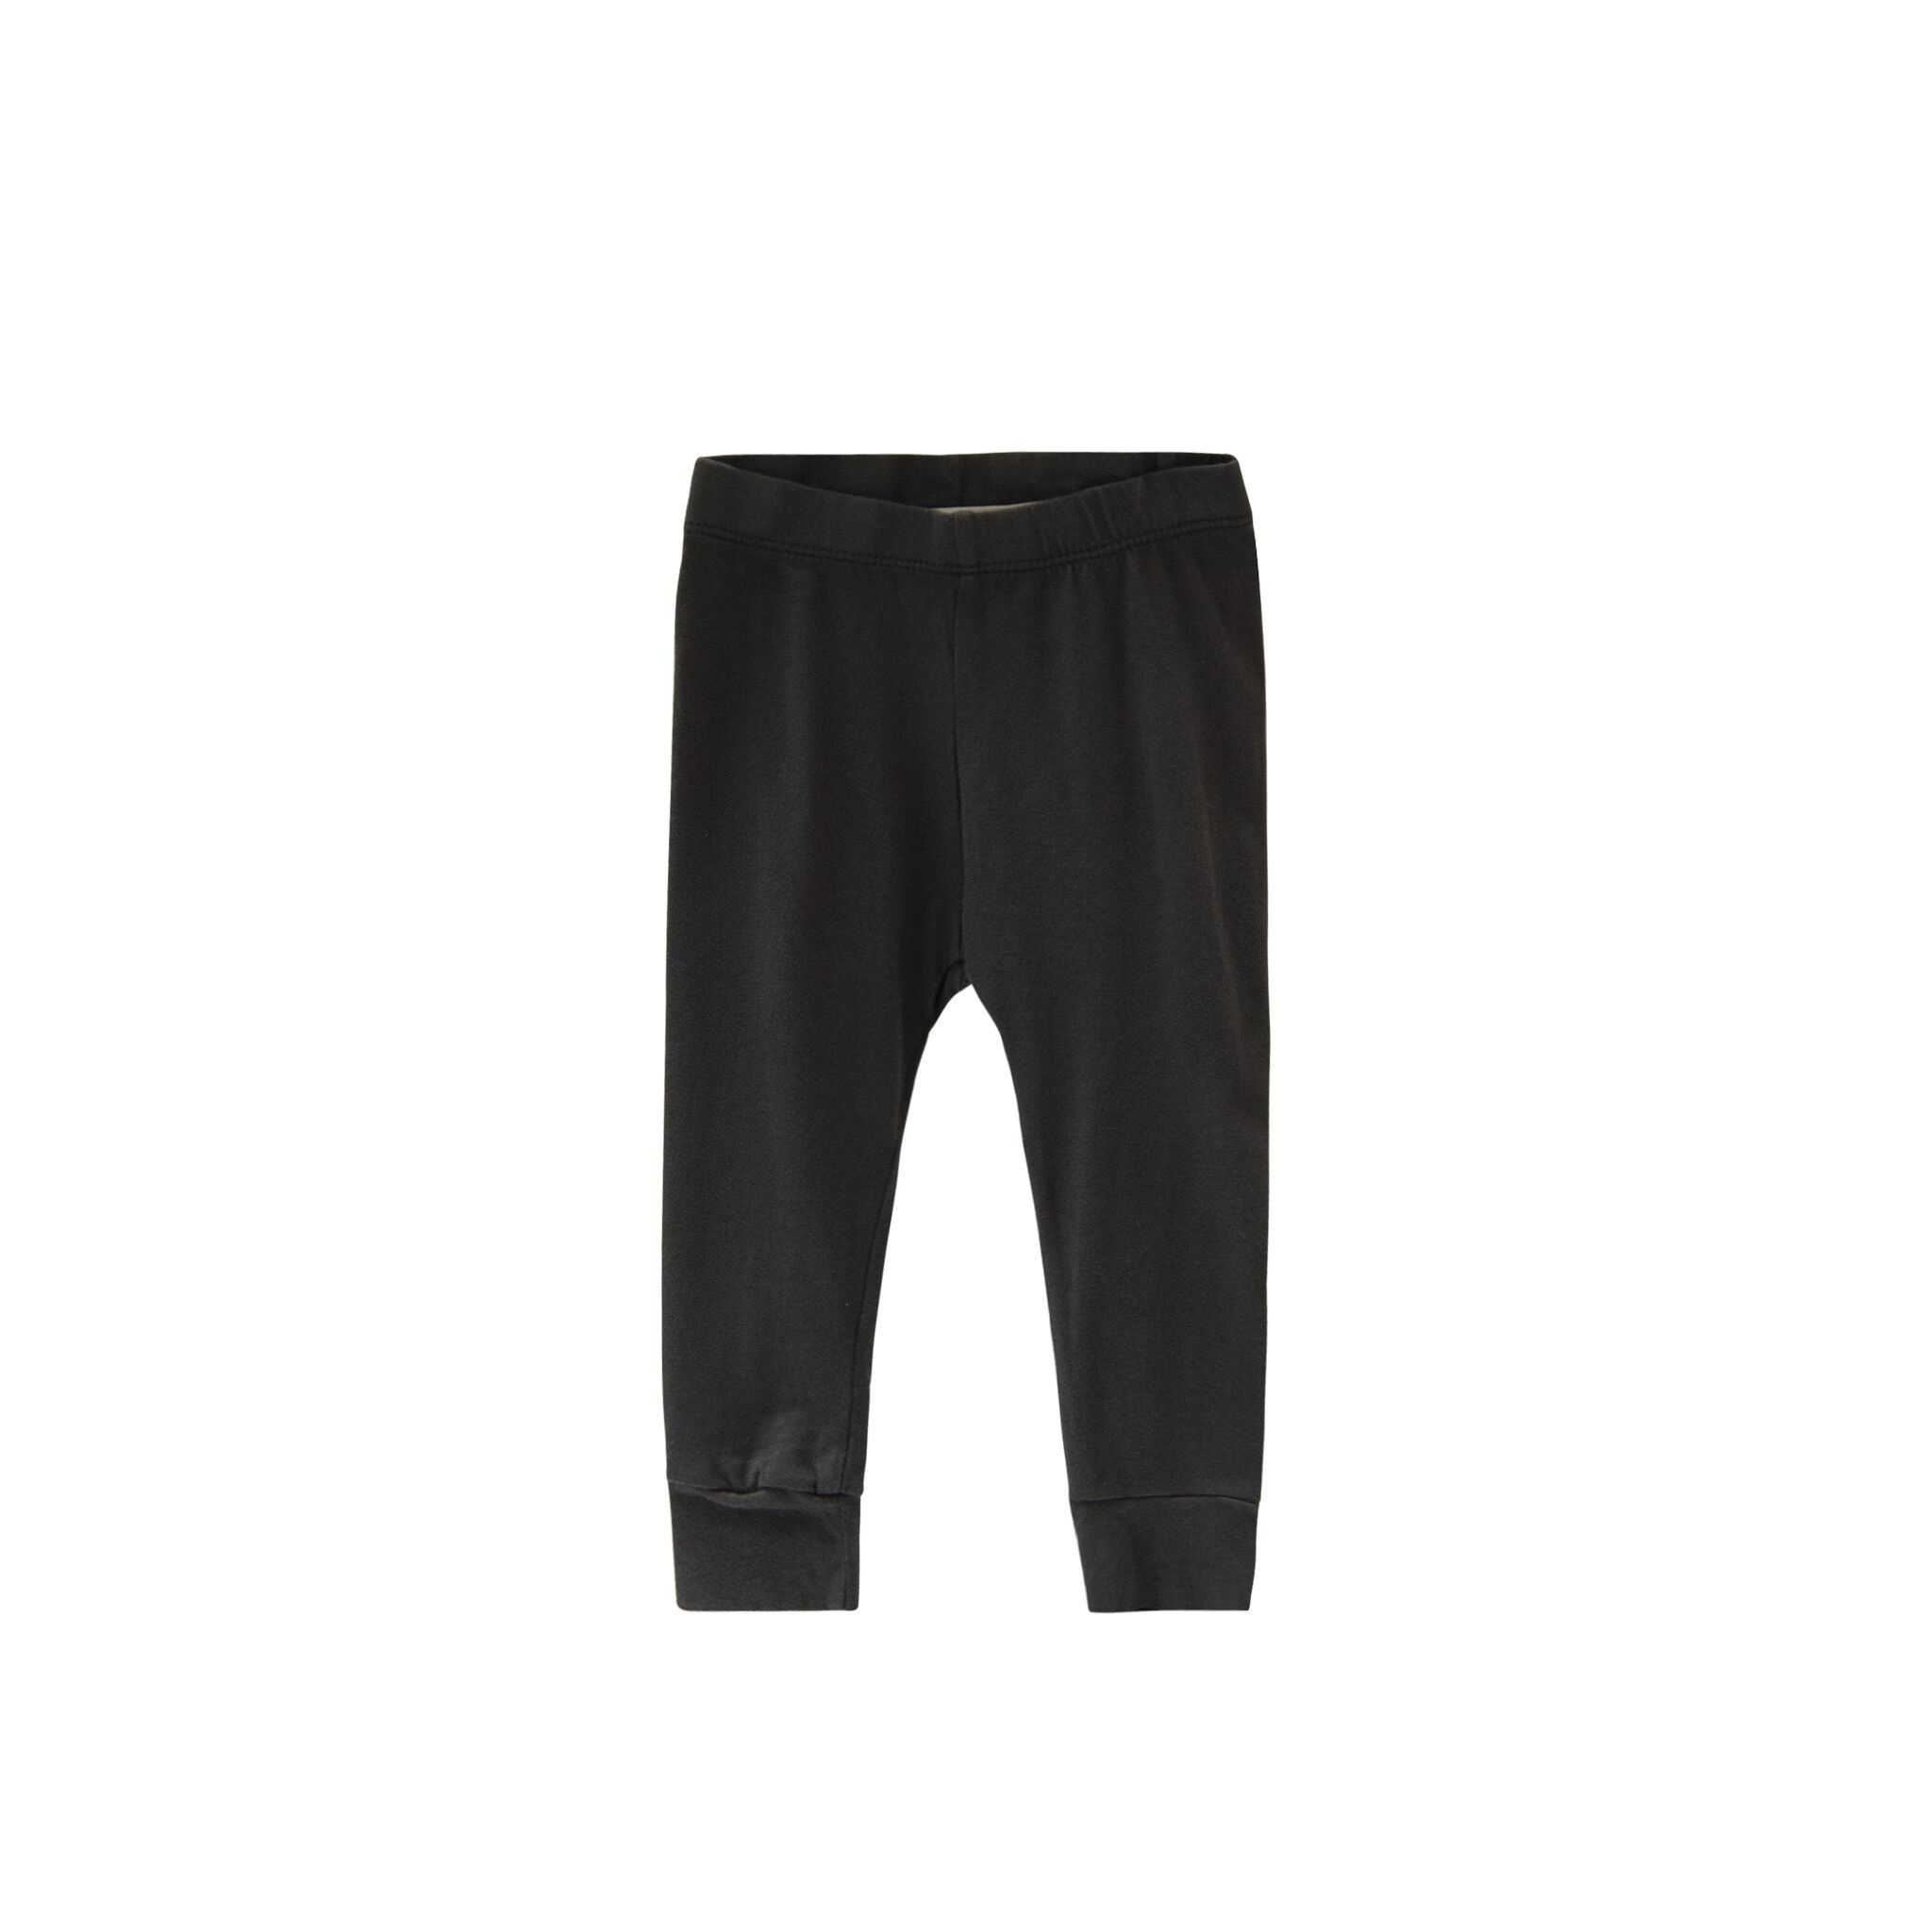 Go Gently Pencil Pant Charcoal